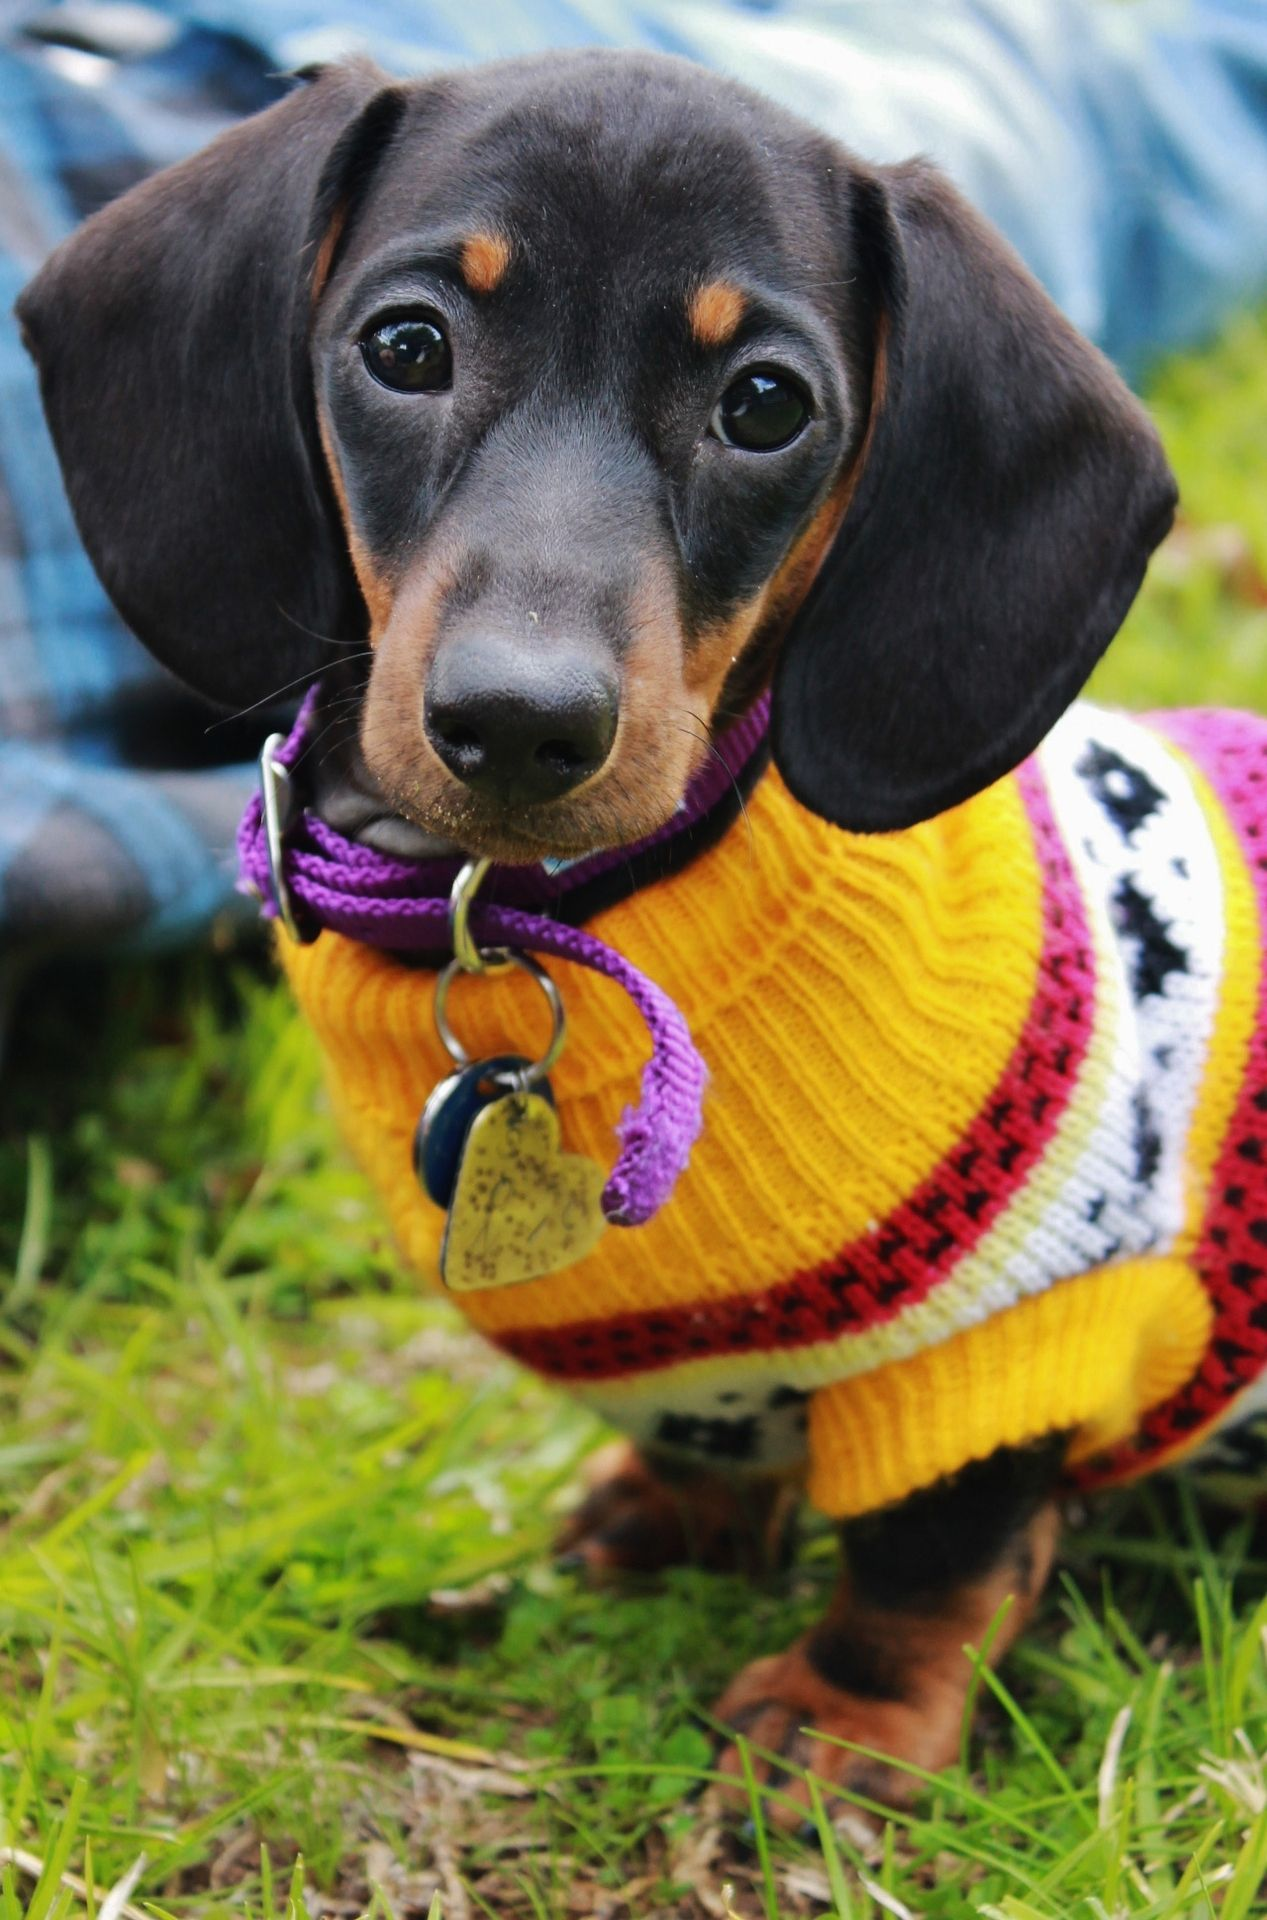 25 Dogs Bundled Up For Winter Dachshund Puppies Dachshund Dog Love